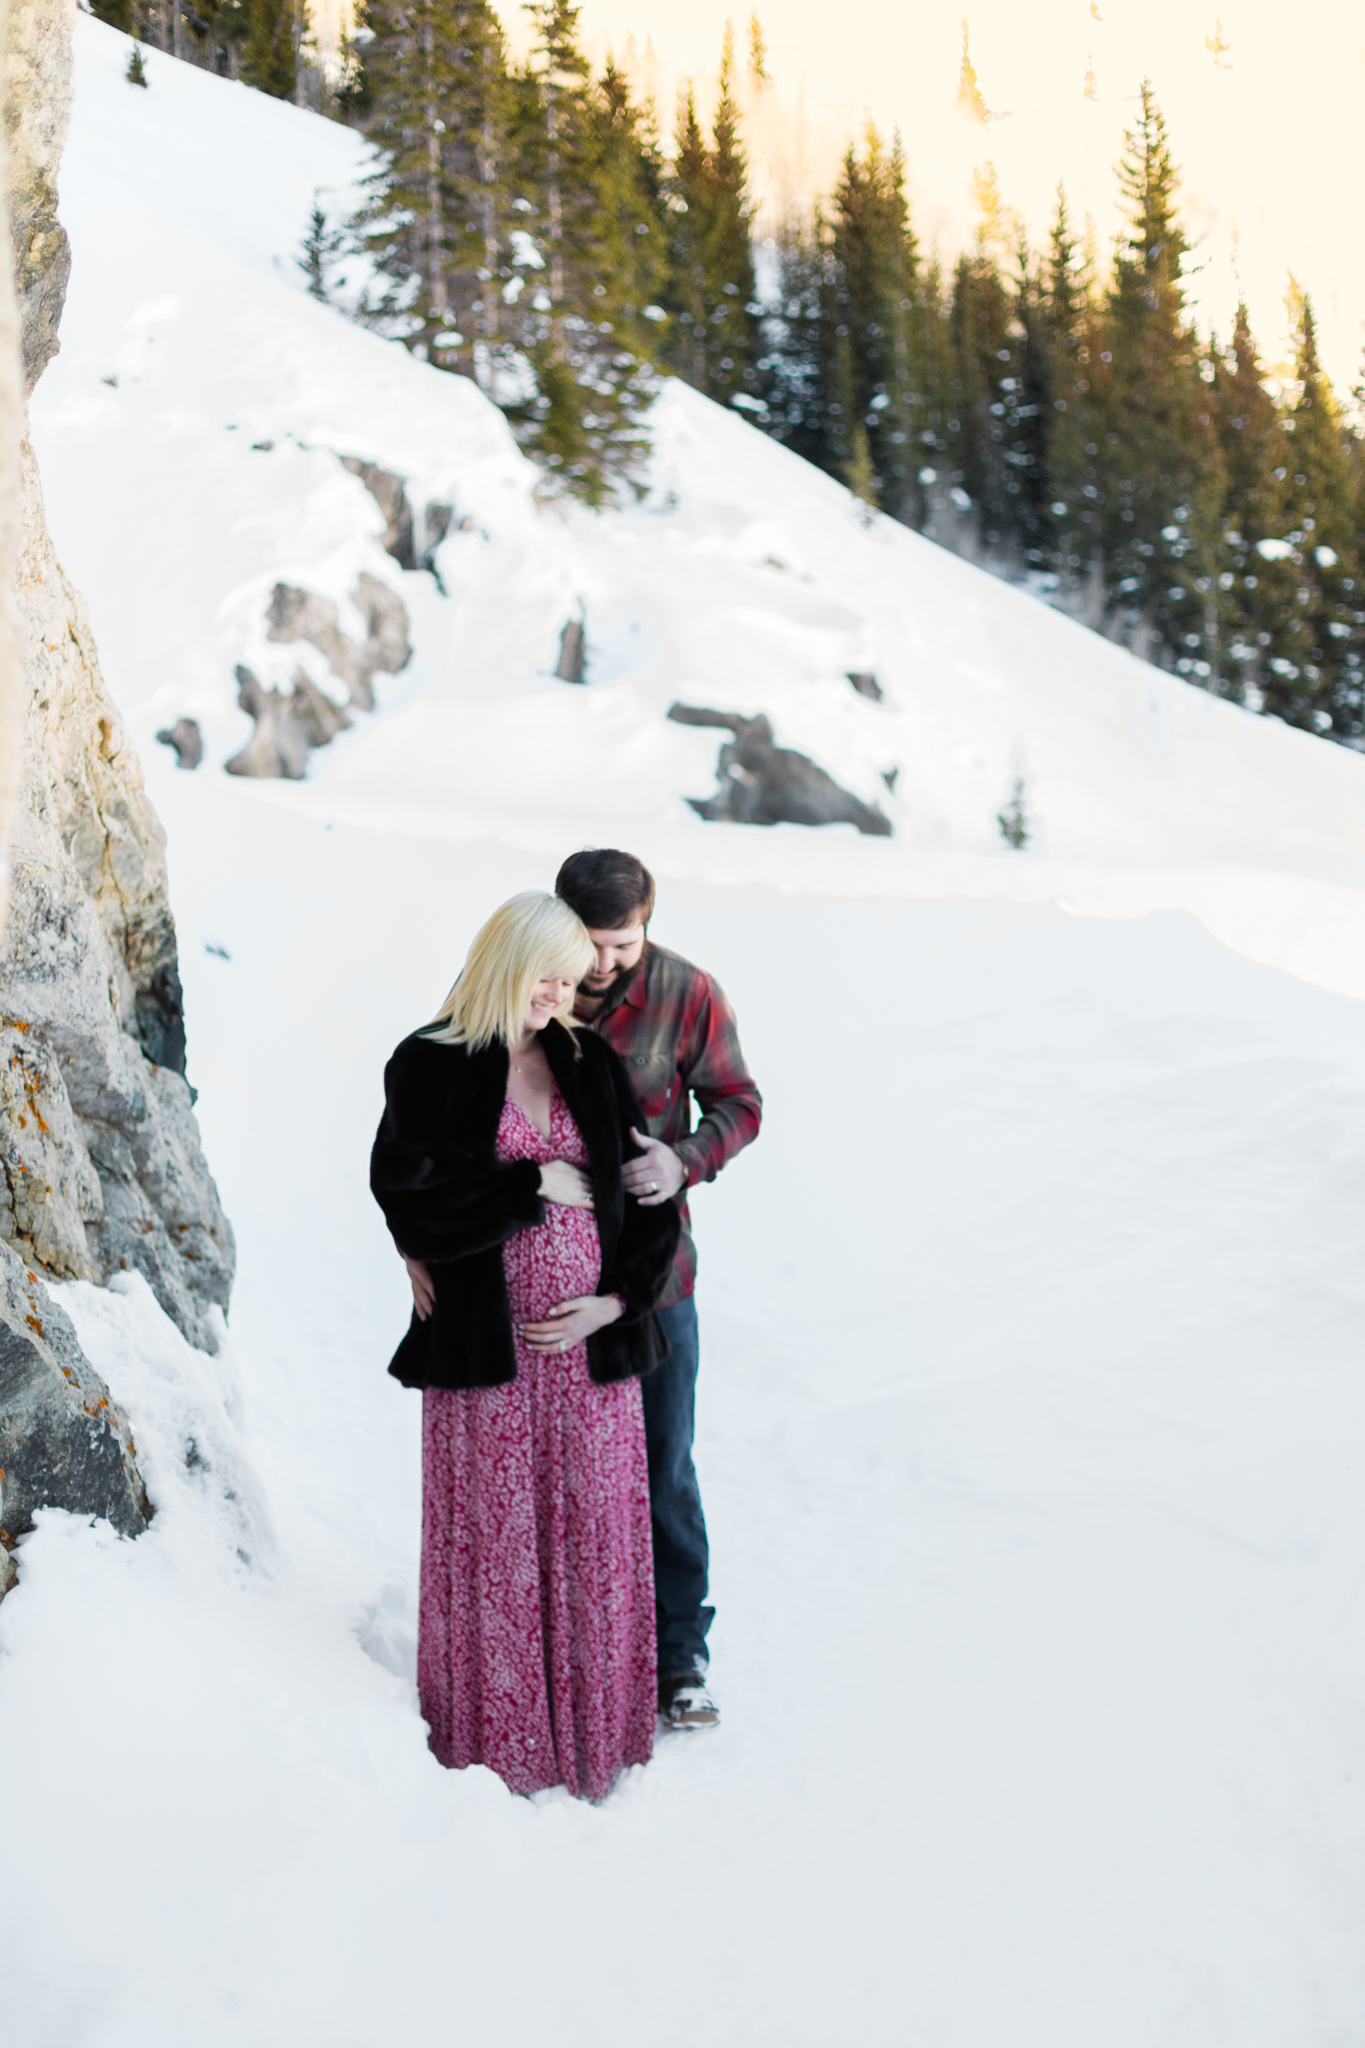 Lara Maternity Photography Breckenridge Colorado